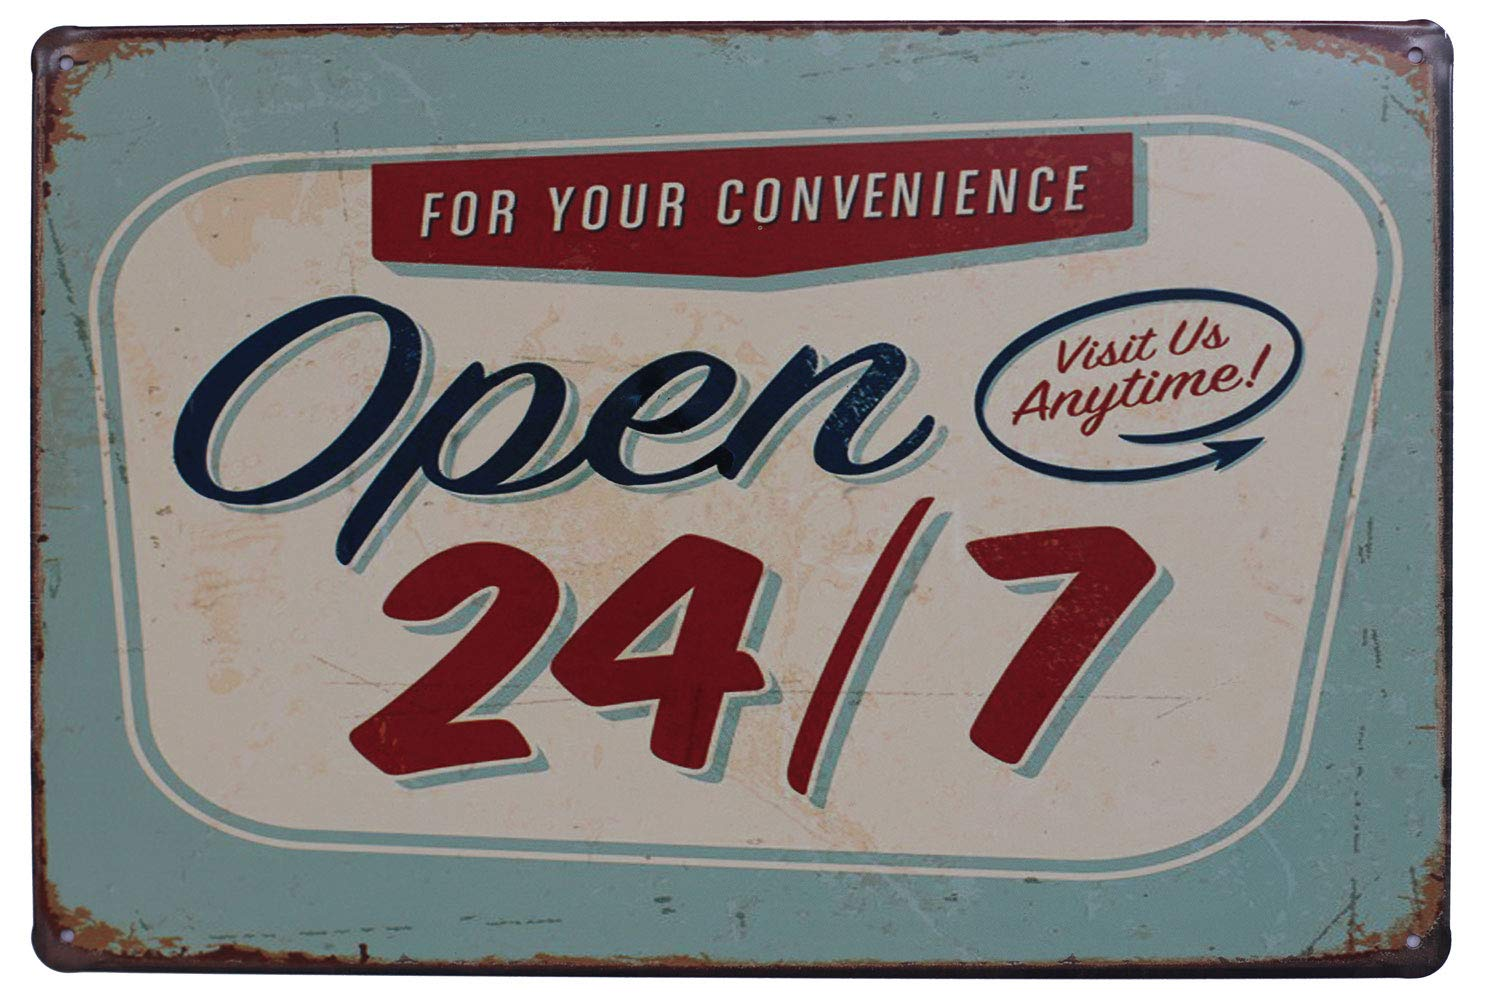 UOOPAI Open 24/7 Funny Tin Sign Bar Pub Garage Diner Cafe Plaque Wall Decor Home Decor Art Poster Retro Vintage